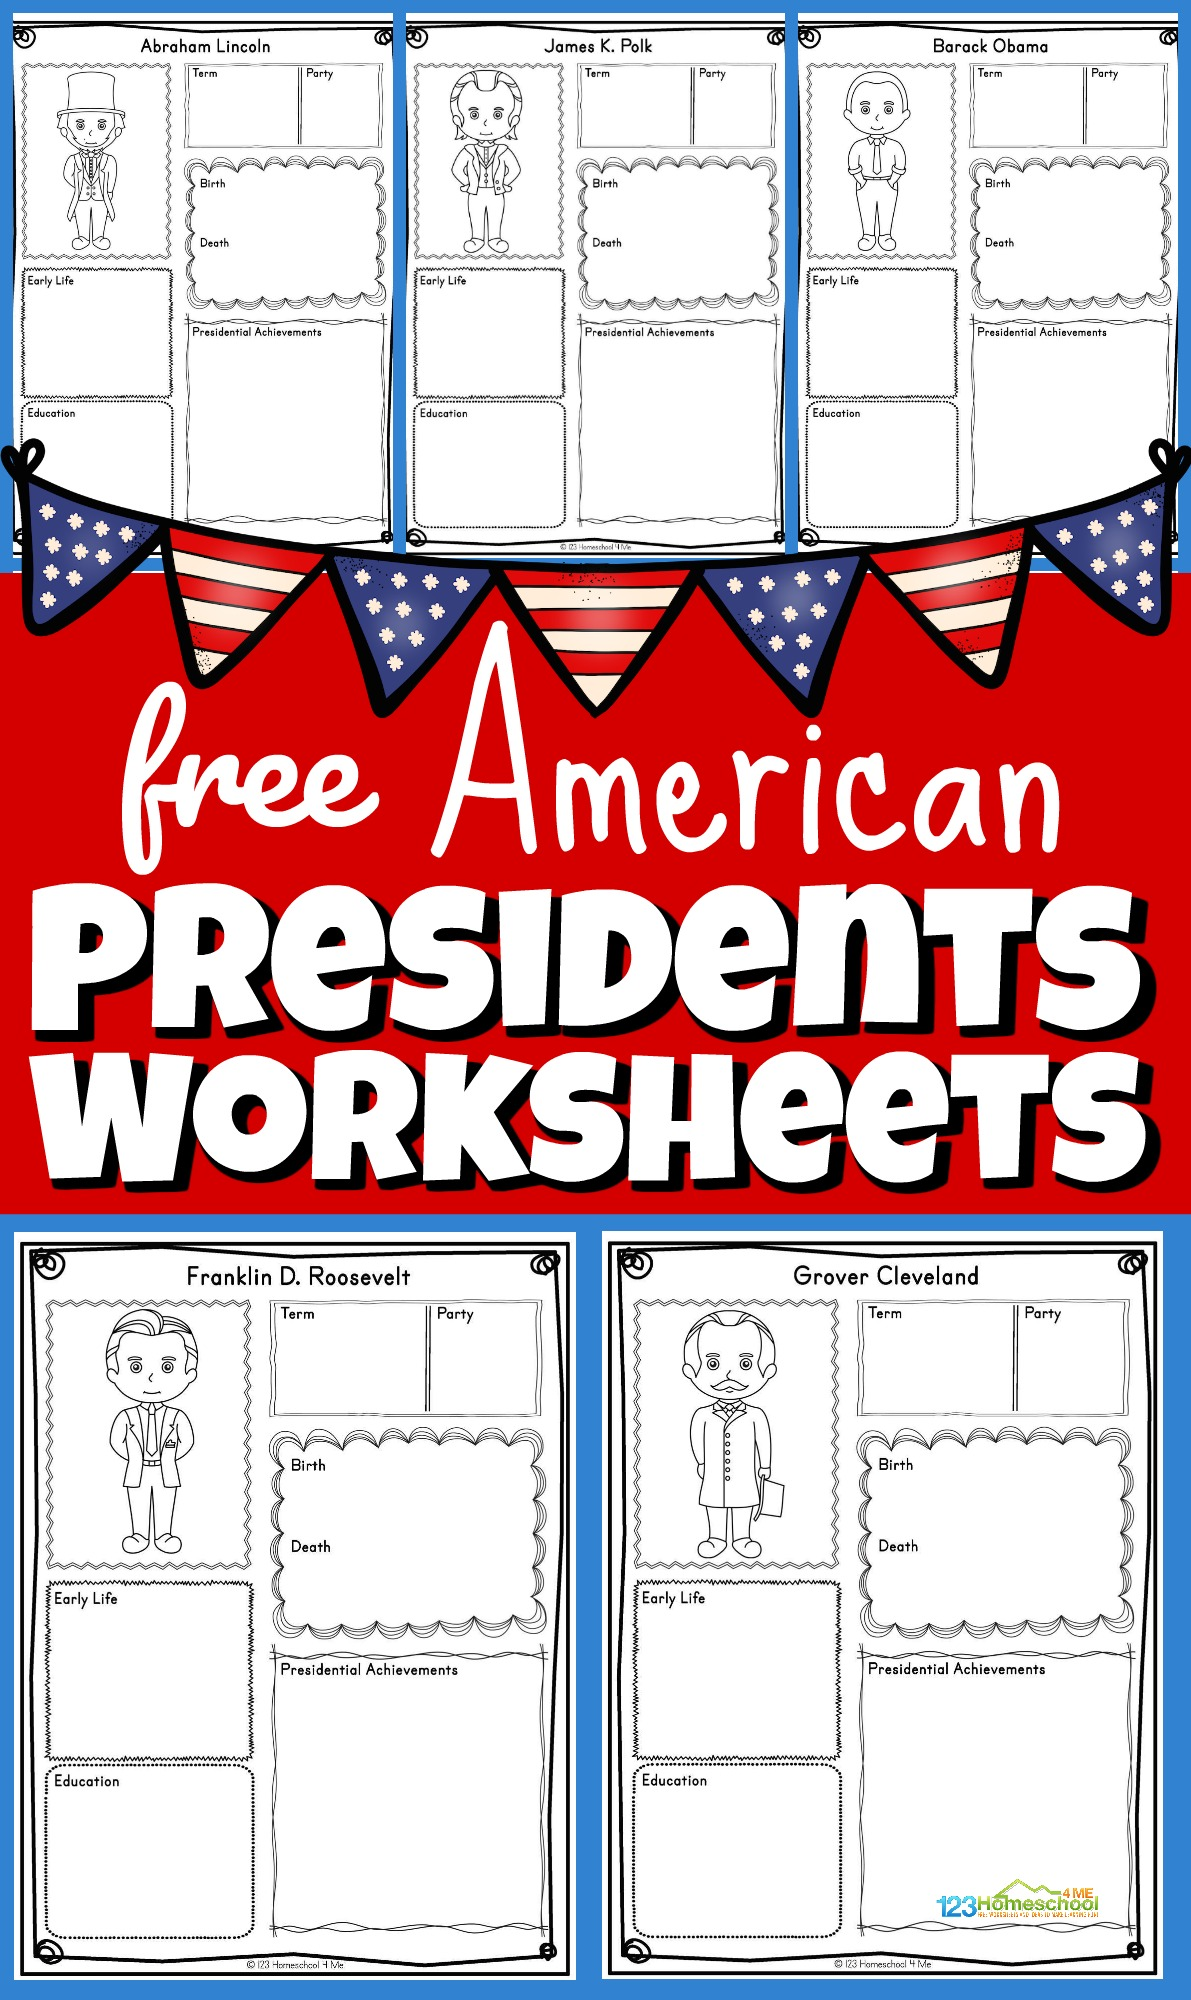 These free printable American Presidents Worksheets are a great way for children to practice and improve their knowledge of the Presidents of the United States as well as work on their research and handwriting skills. This Presidents for kids activity is perfect for kindergarten, first grade, 2nd grade, 3rd grade, 4th grade, 5th grade, and 6th grade kids learning about American history, preparing for Presidential Elections for kids, or celebrating Presidents Day. Siimply print pdf file with US presidents worksheets for all 46 presidents from George Washington to Joe Biden.